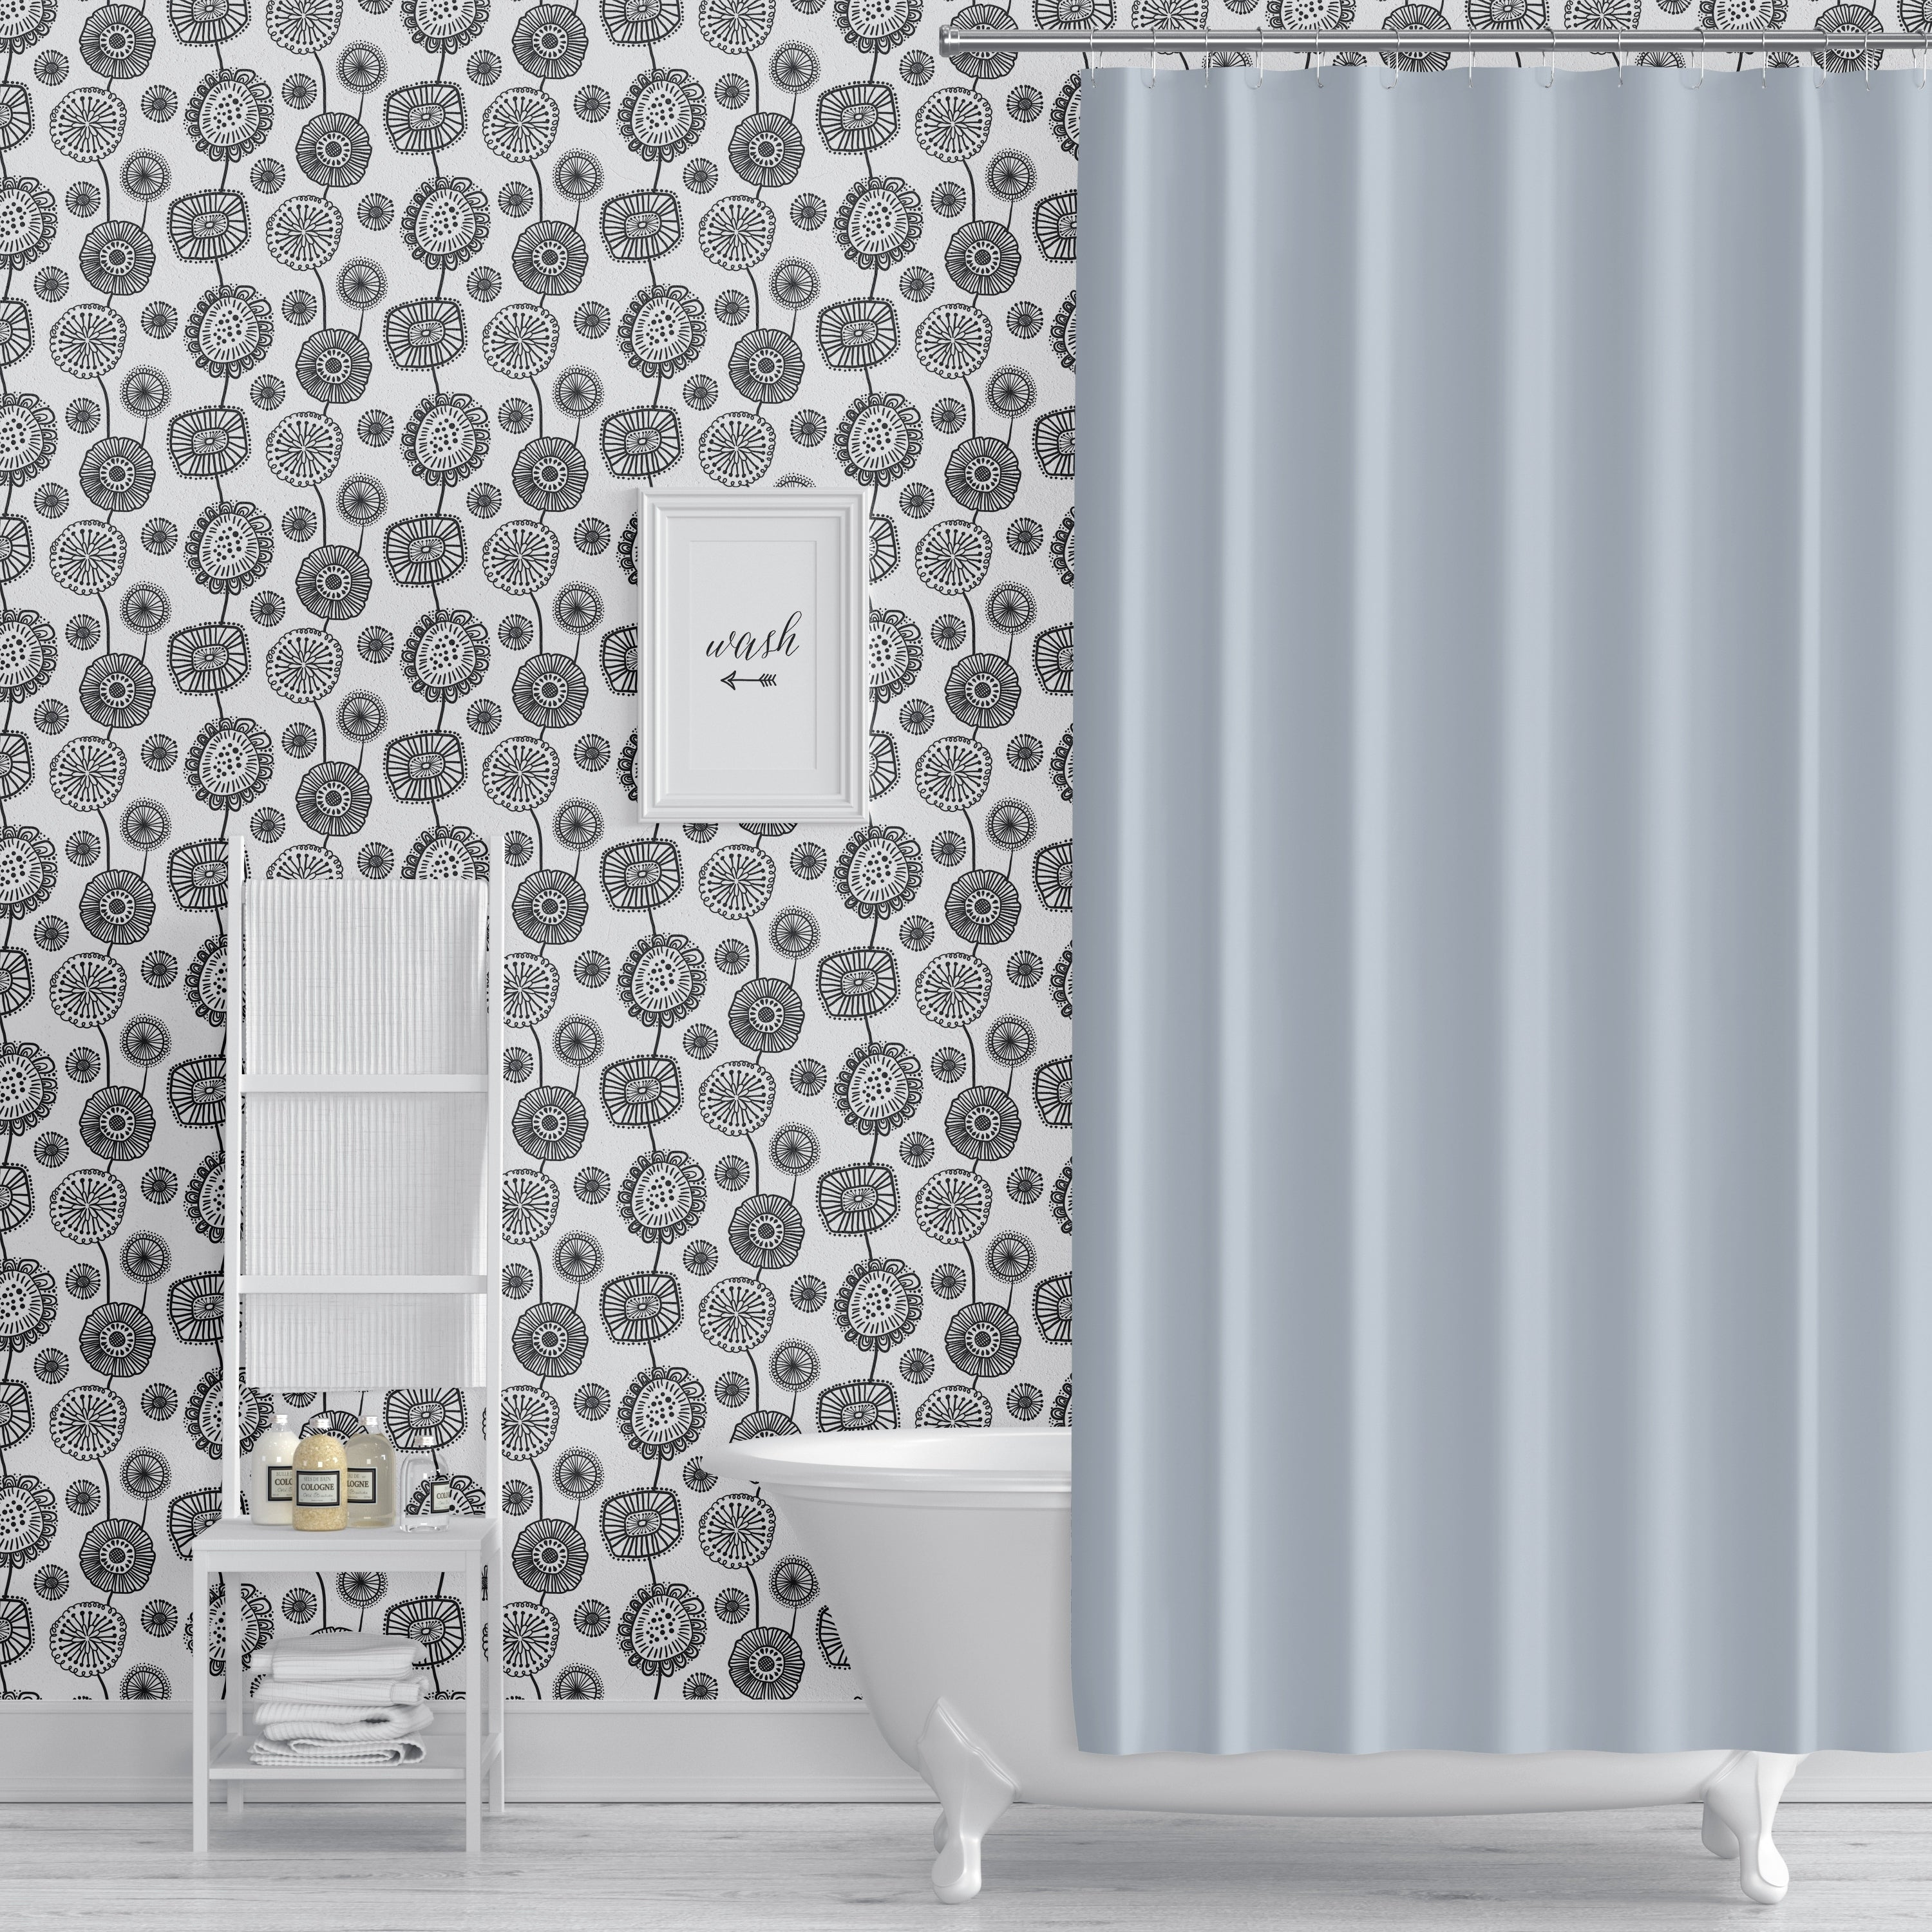 Shop Doodle Floral Black And White Peel And Stick Wallpaper By